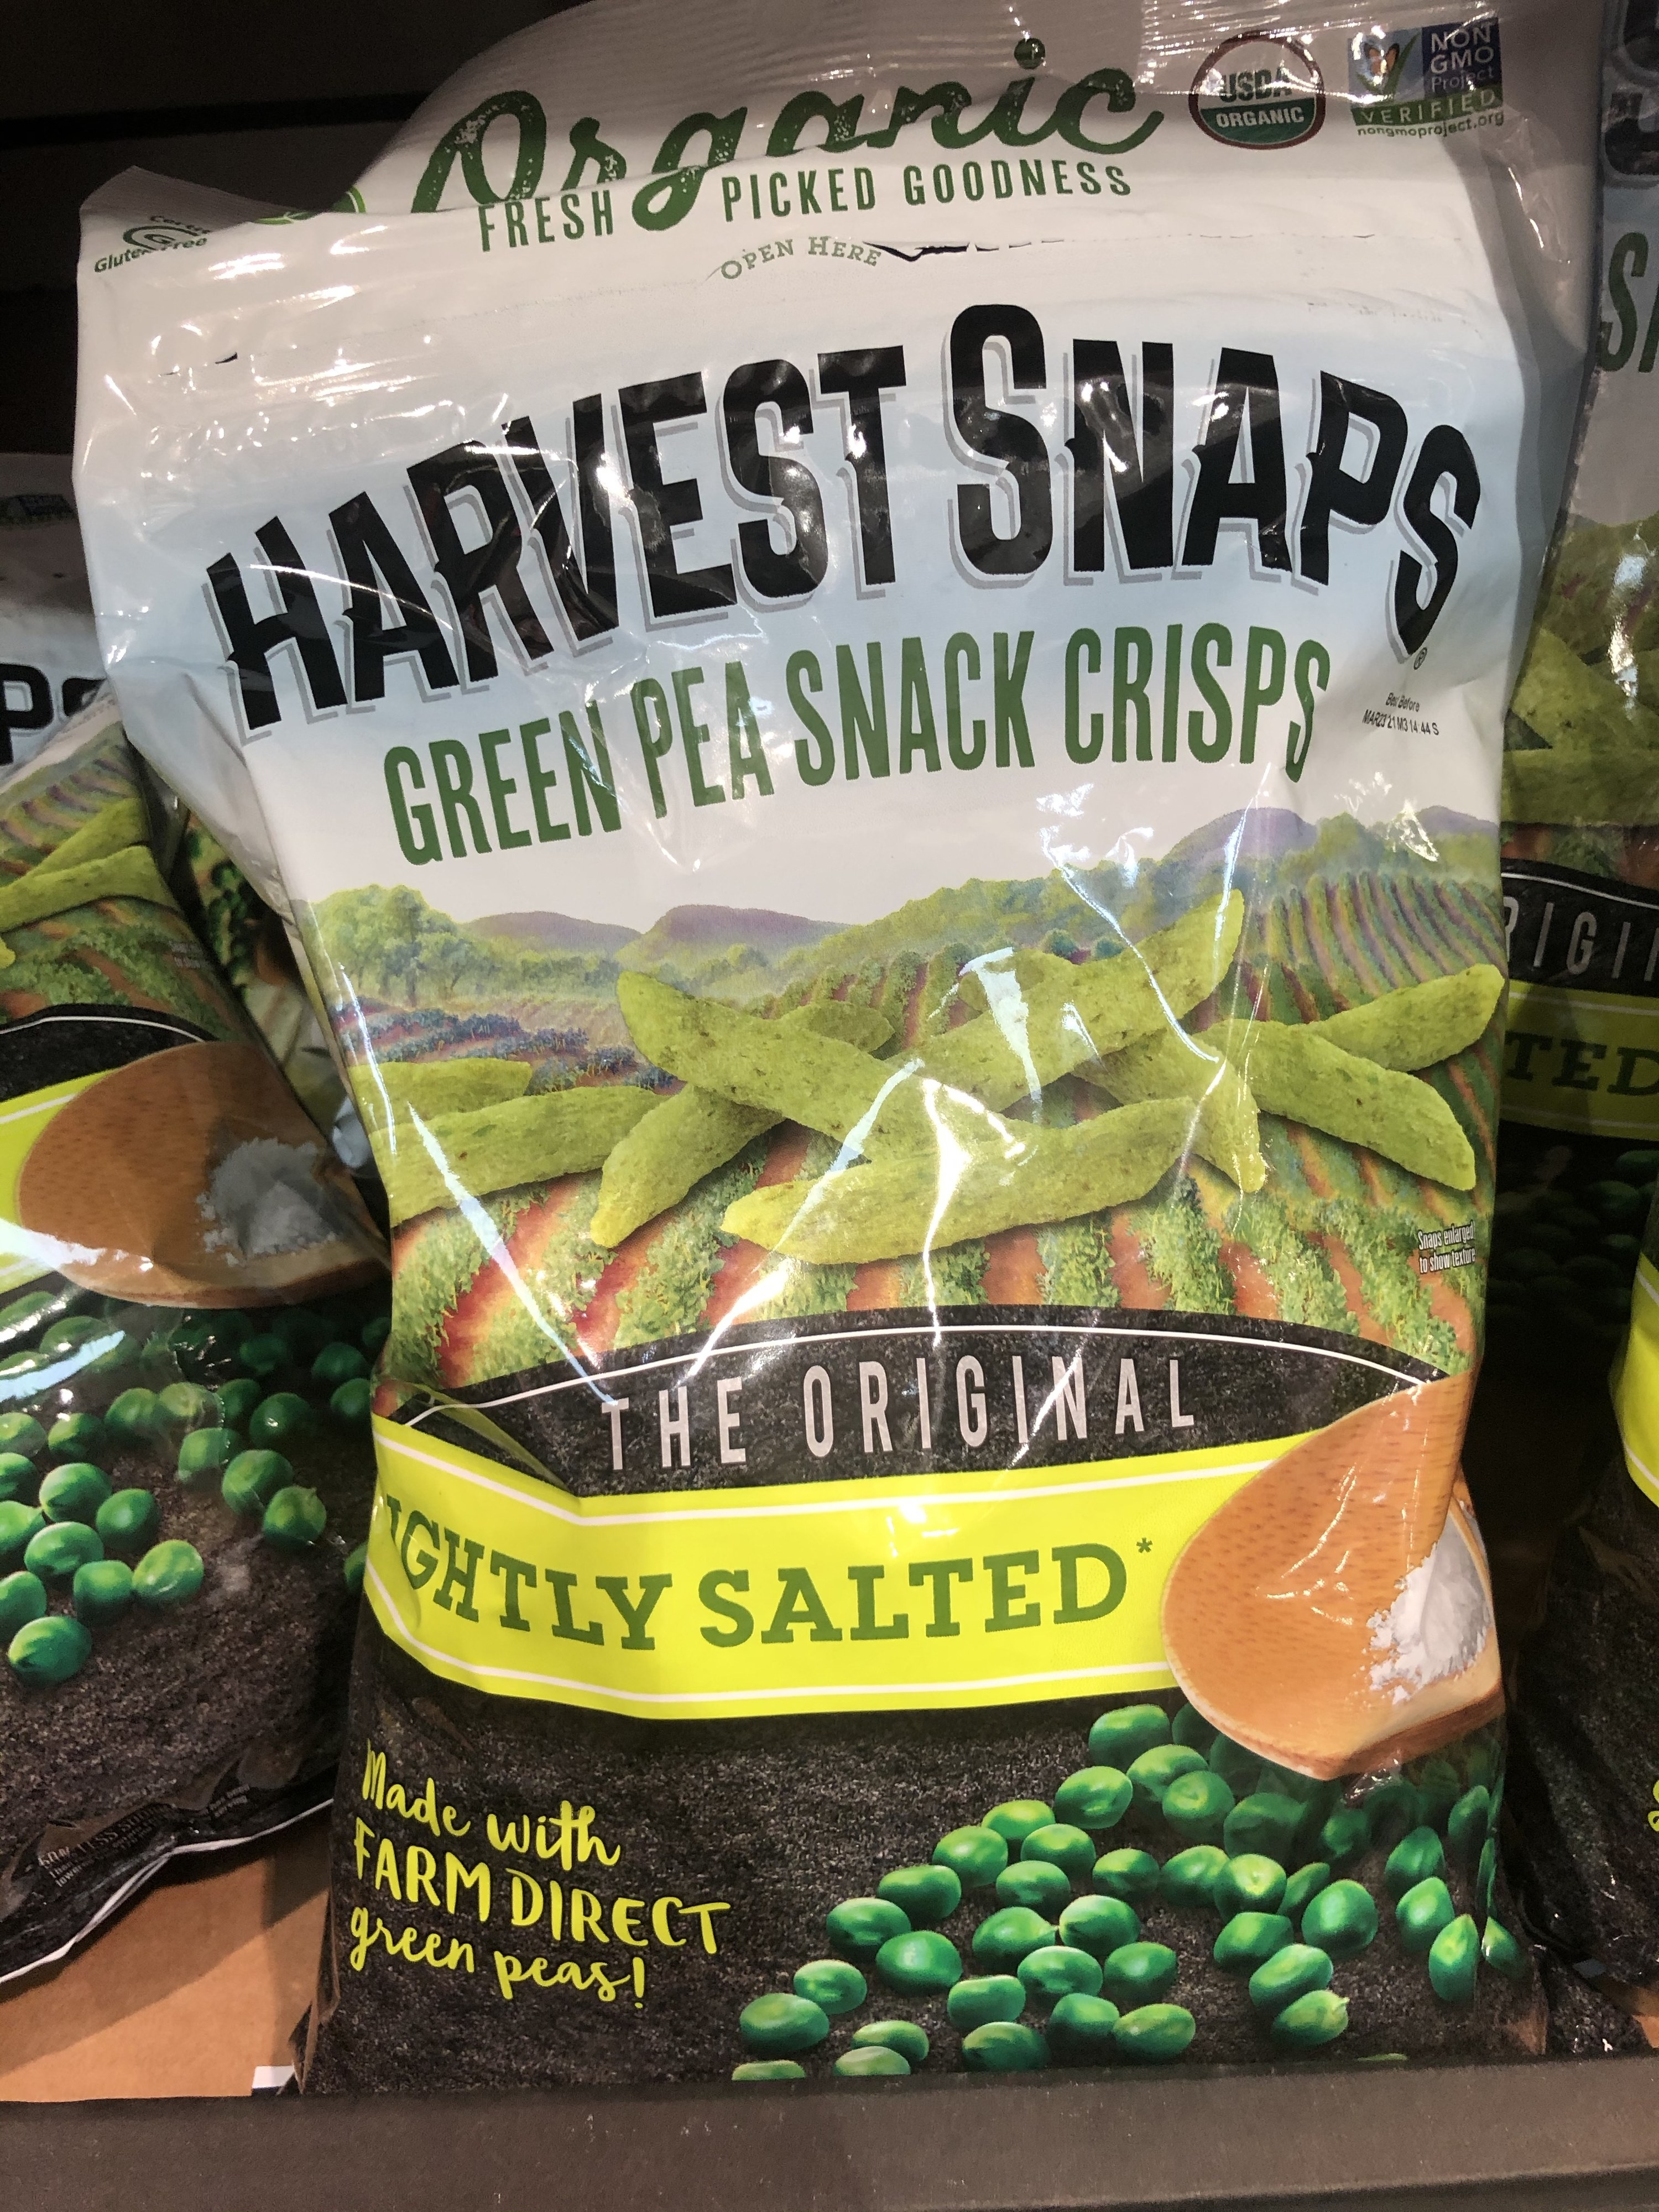 A bag of Harvest Snaps pea crips